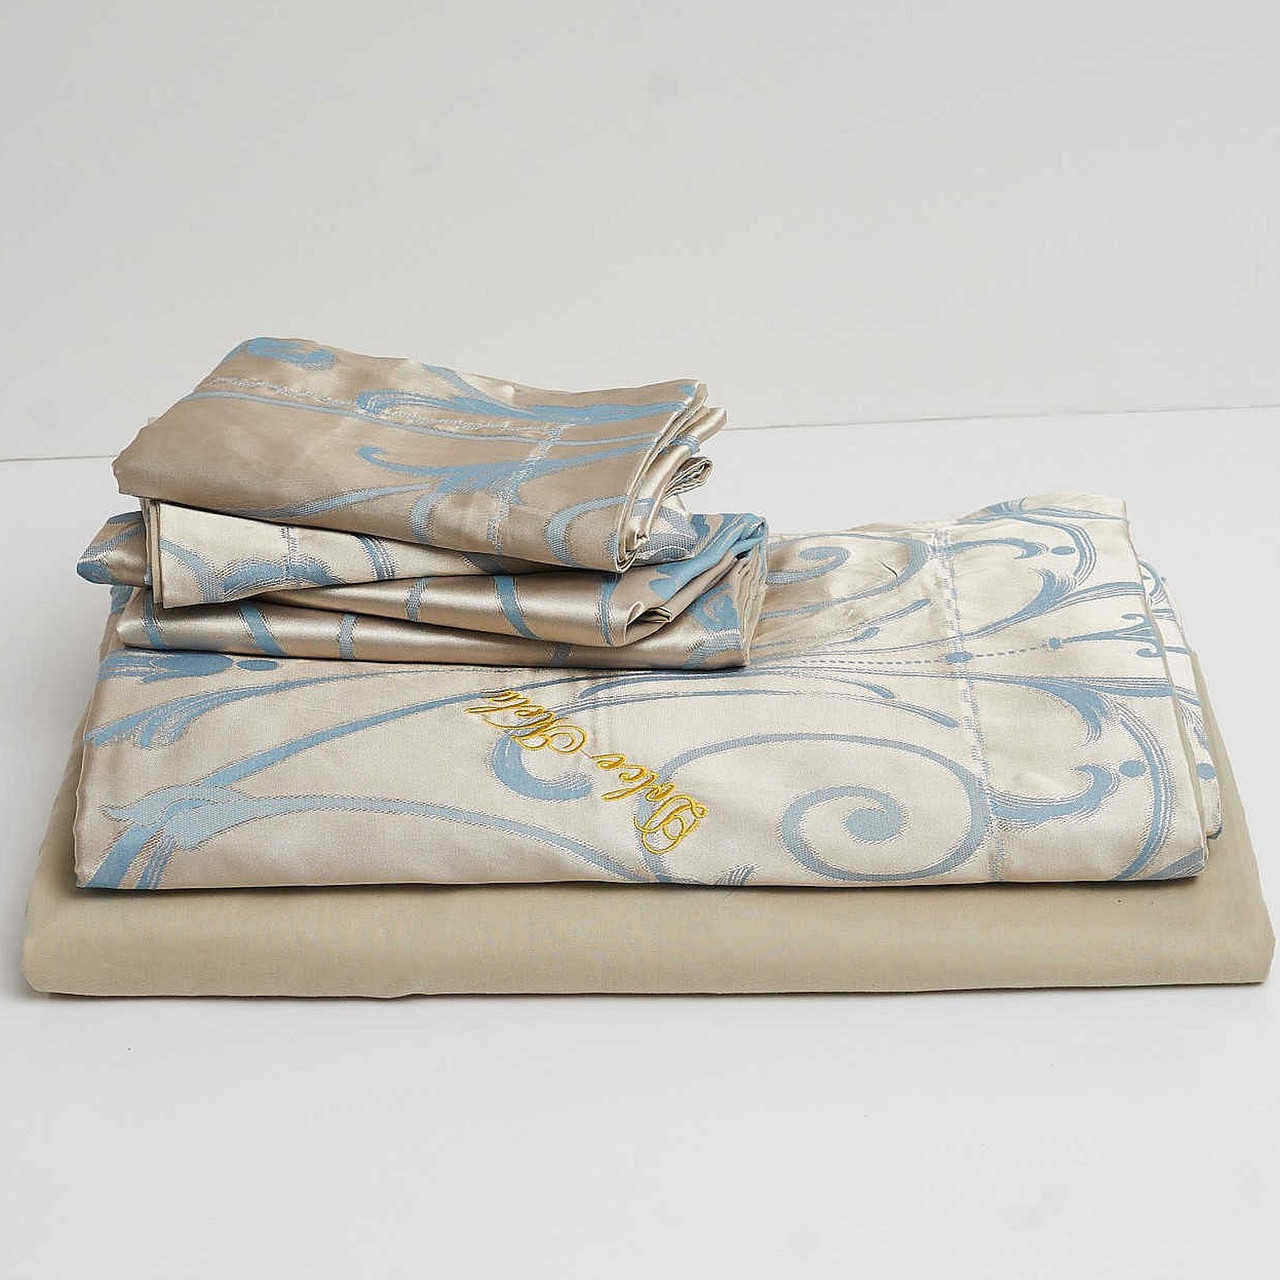 Bed-in-a-Bag-Luxury Jacquard King Size Duvet Cover Set  Drop-shipping